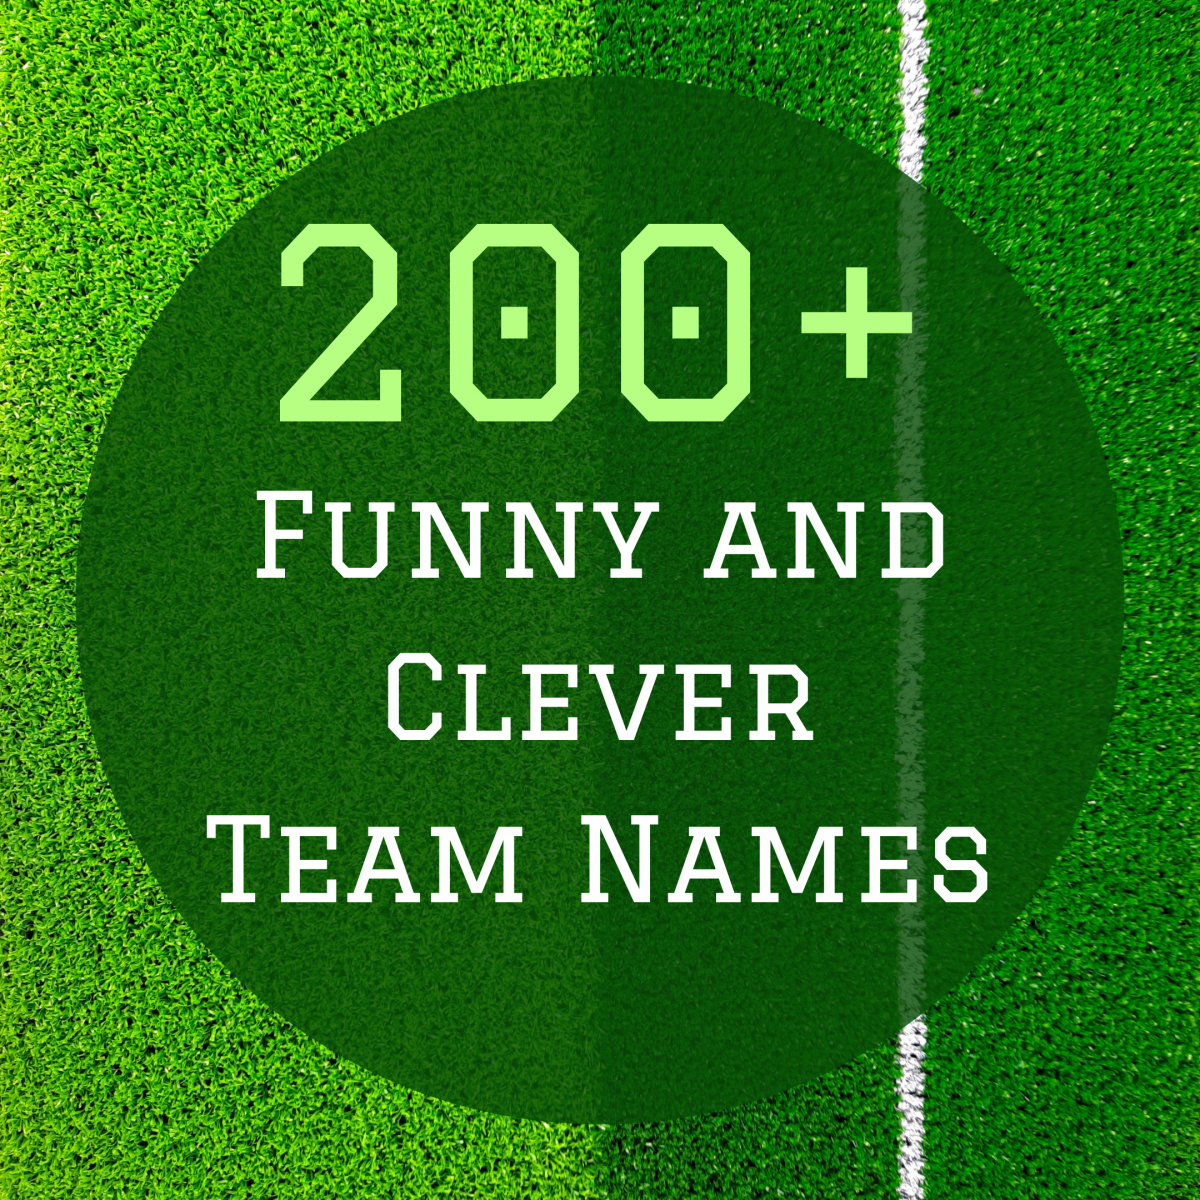 A Complete List of Cool, Funny, and Clever Team Names